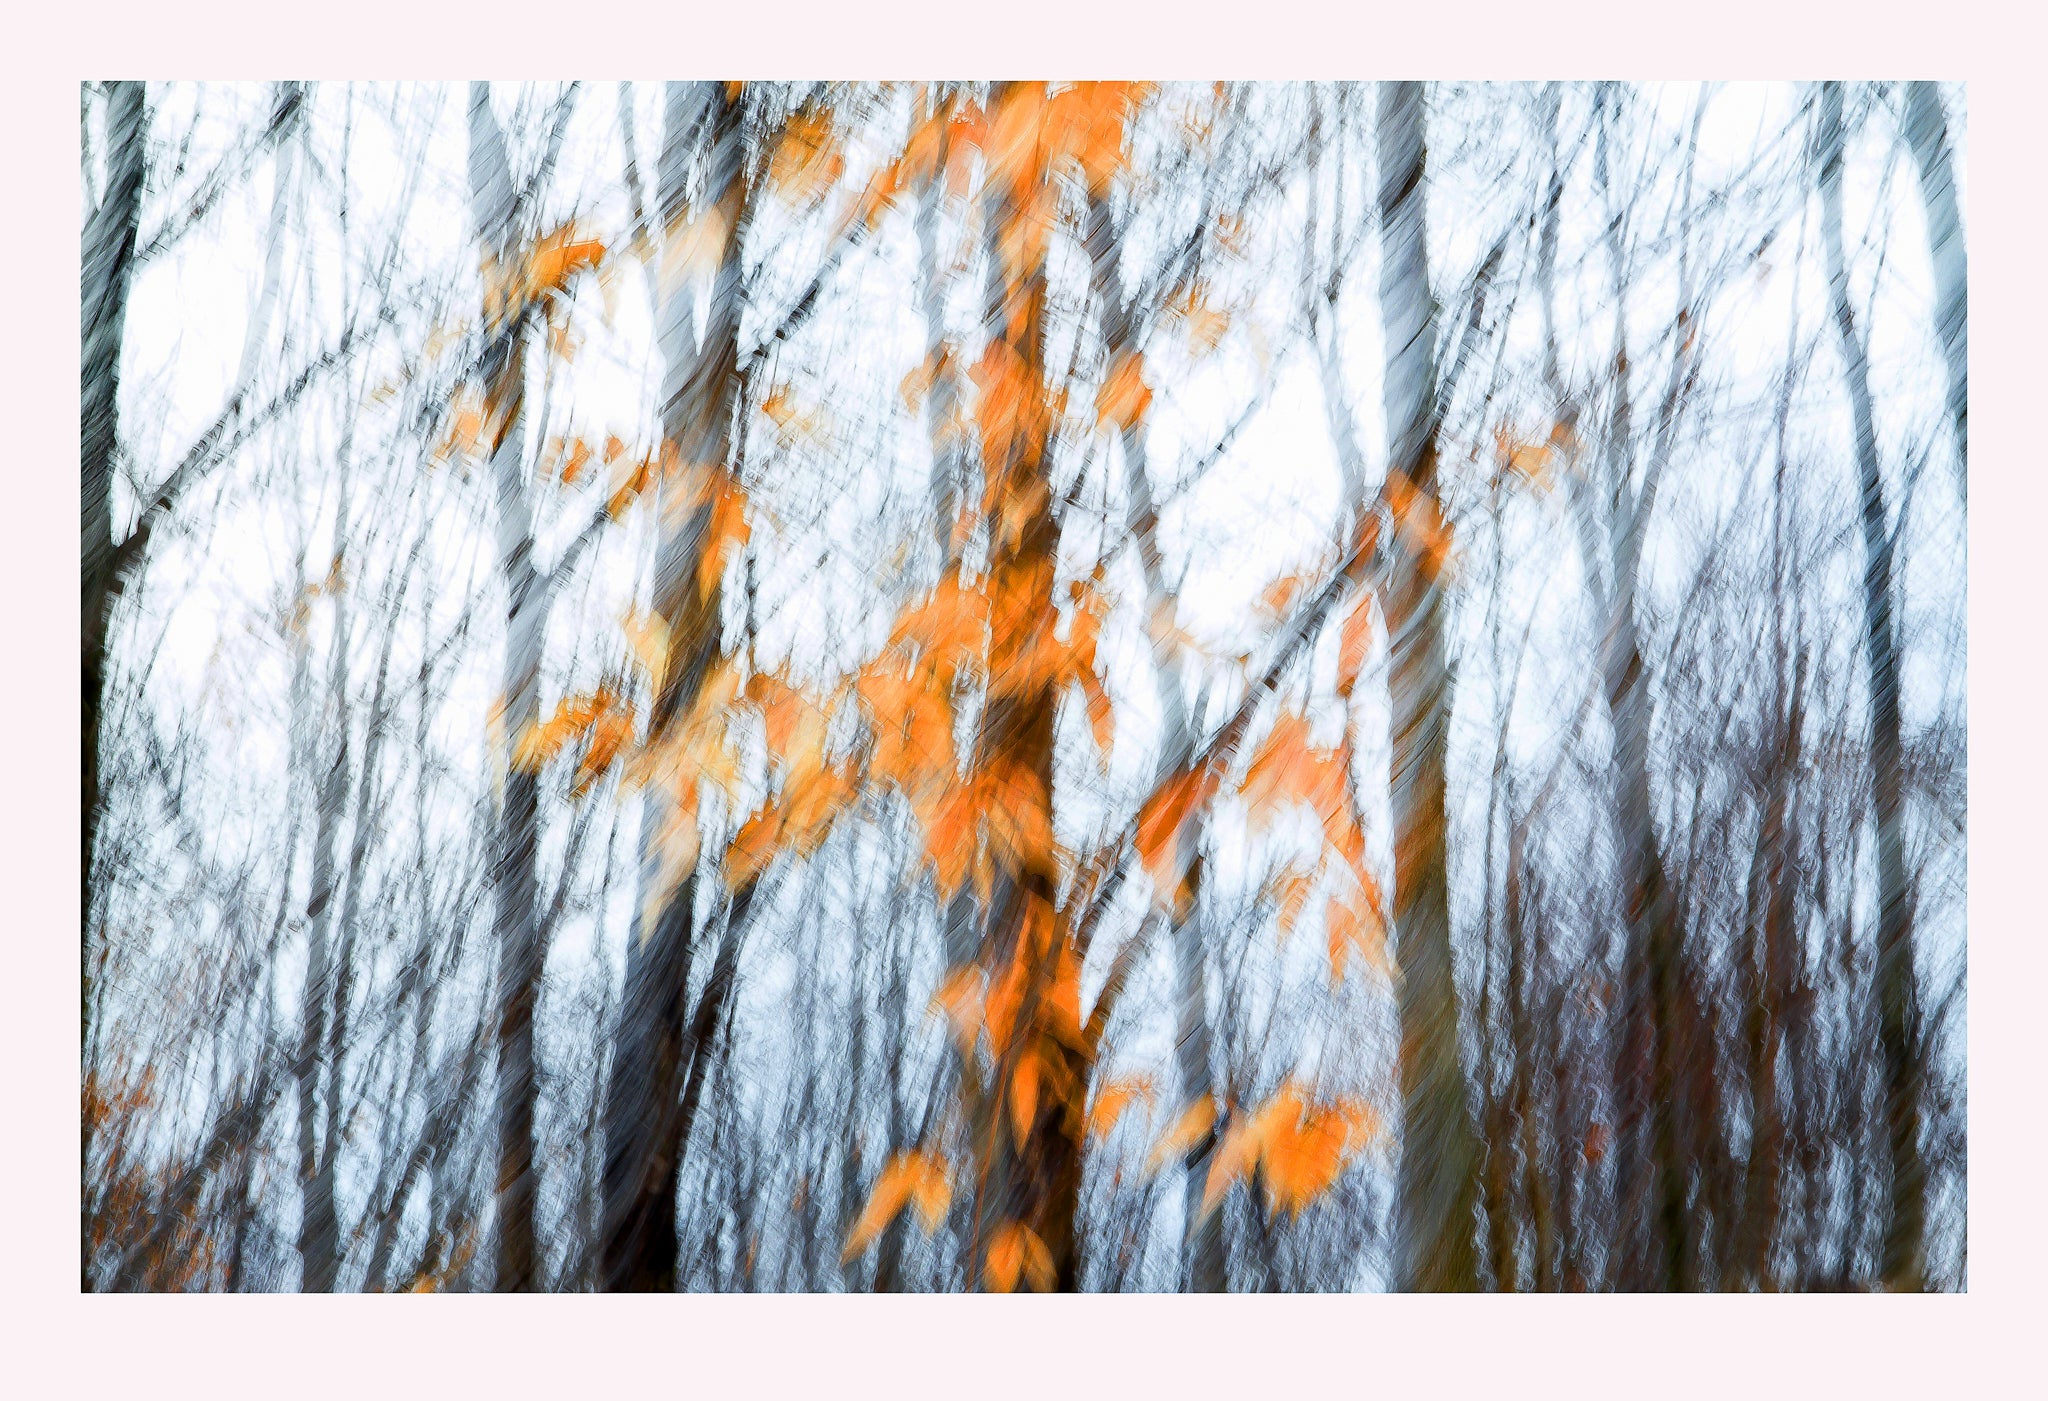 'Autumn Wind' - Intentional Camera Movement